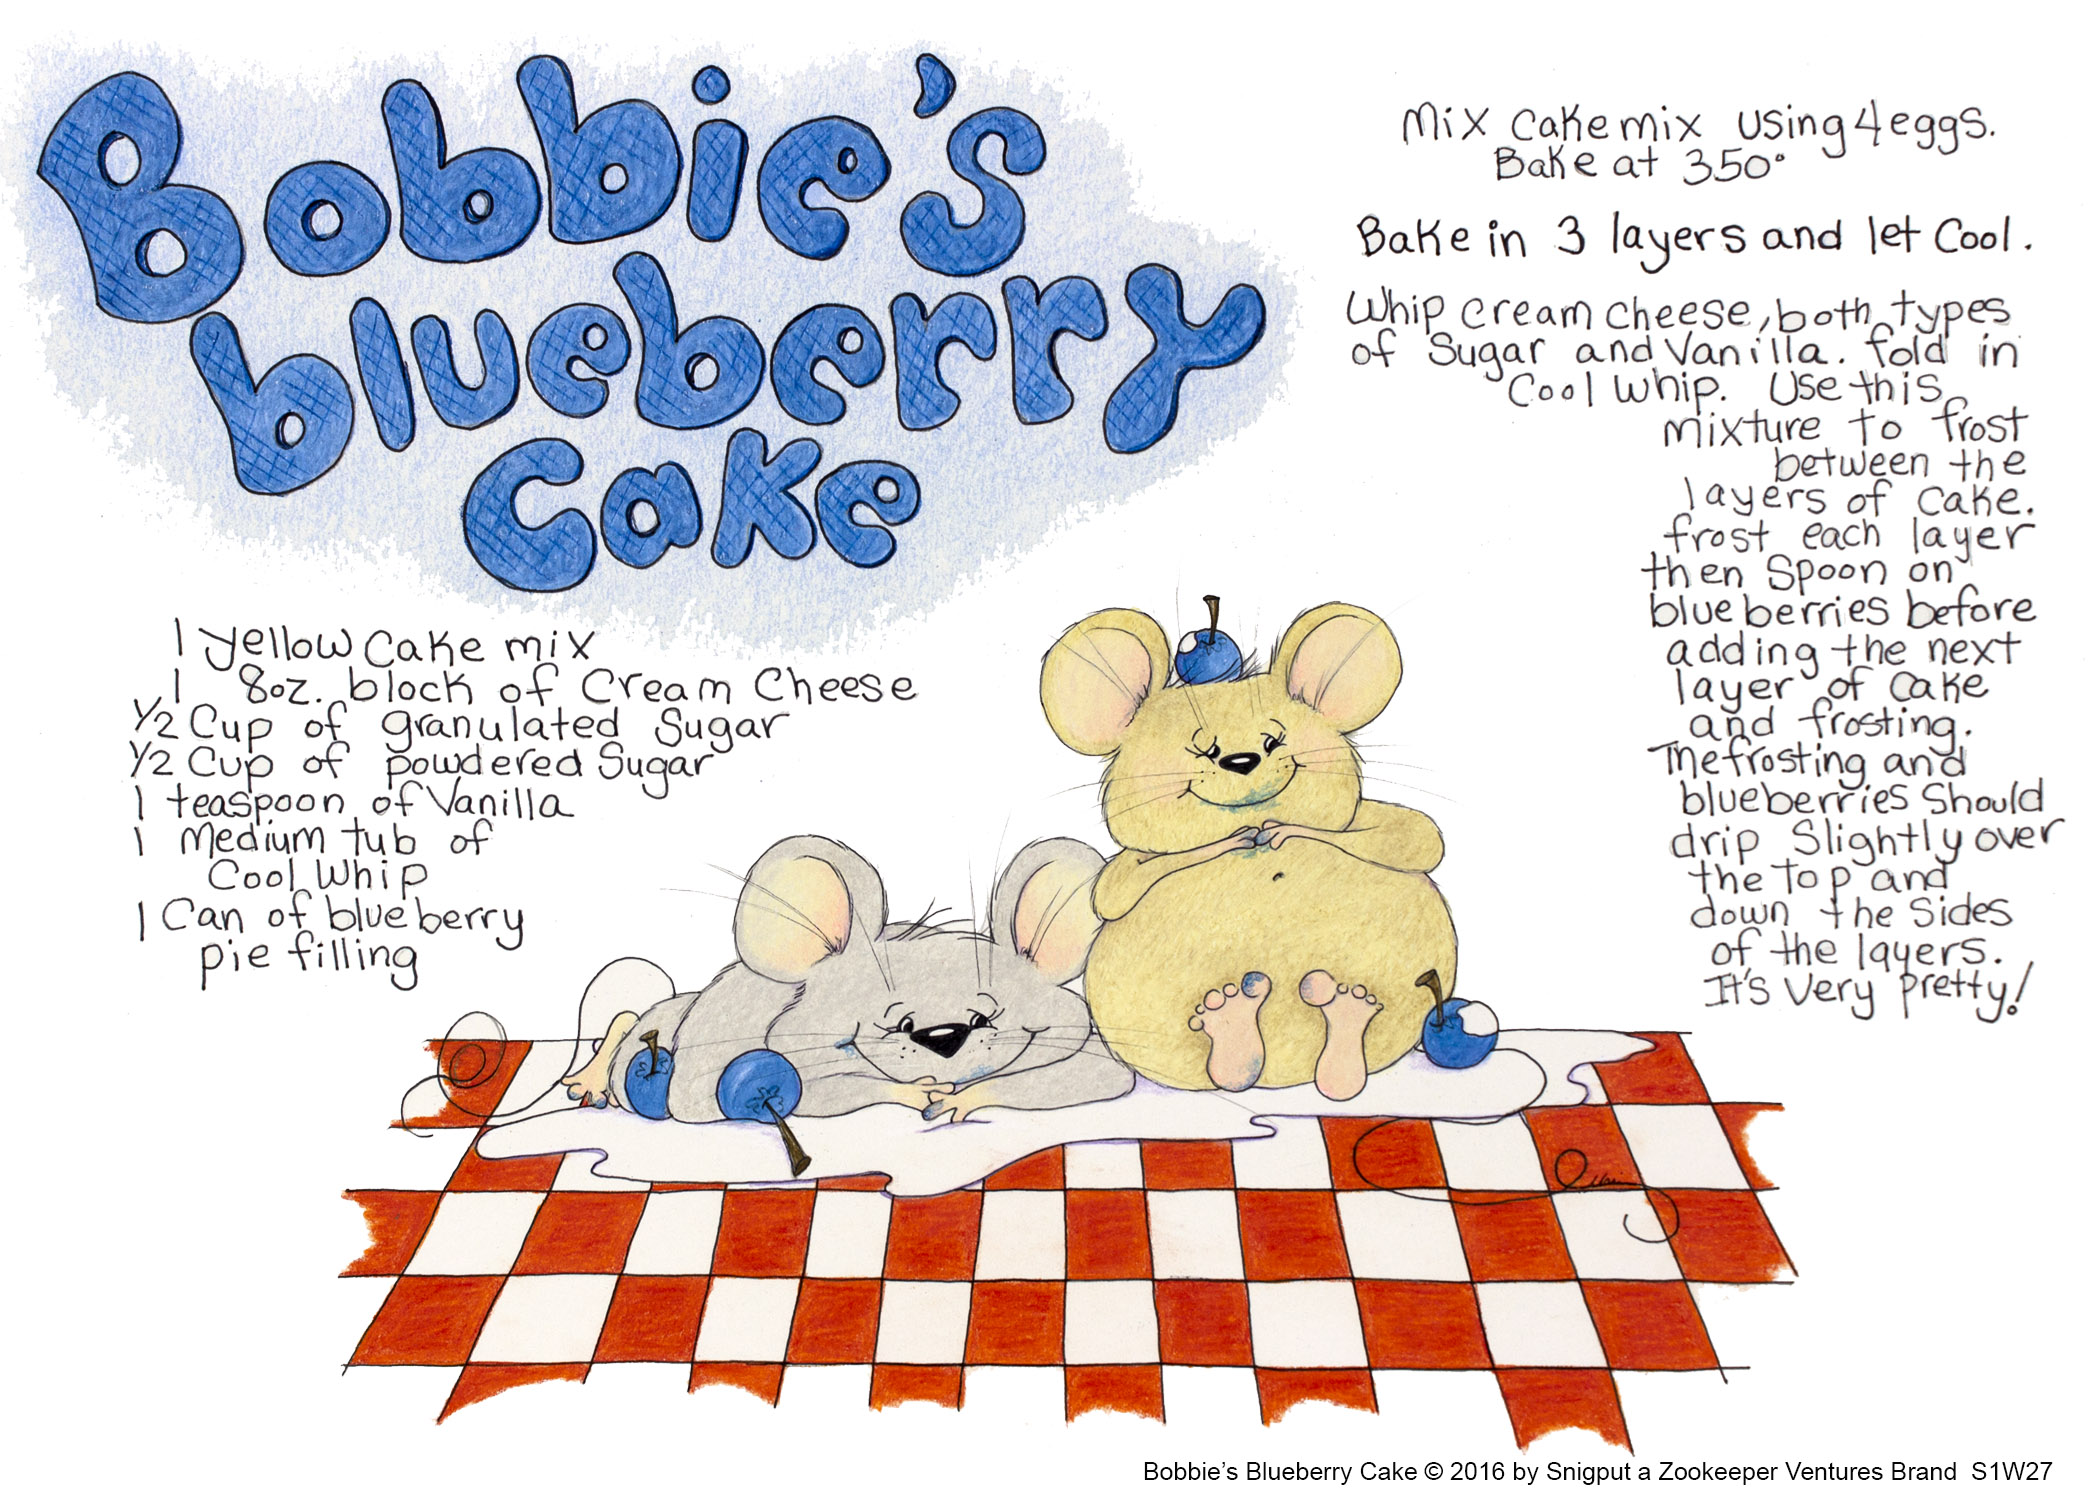 Bobbies Blueberry Cake